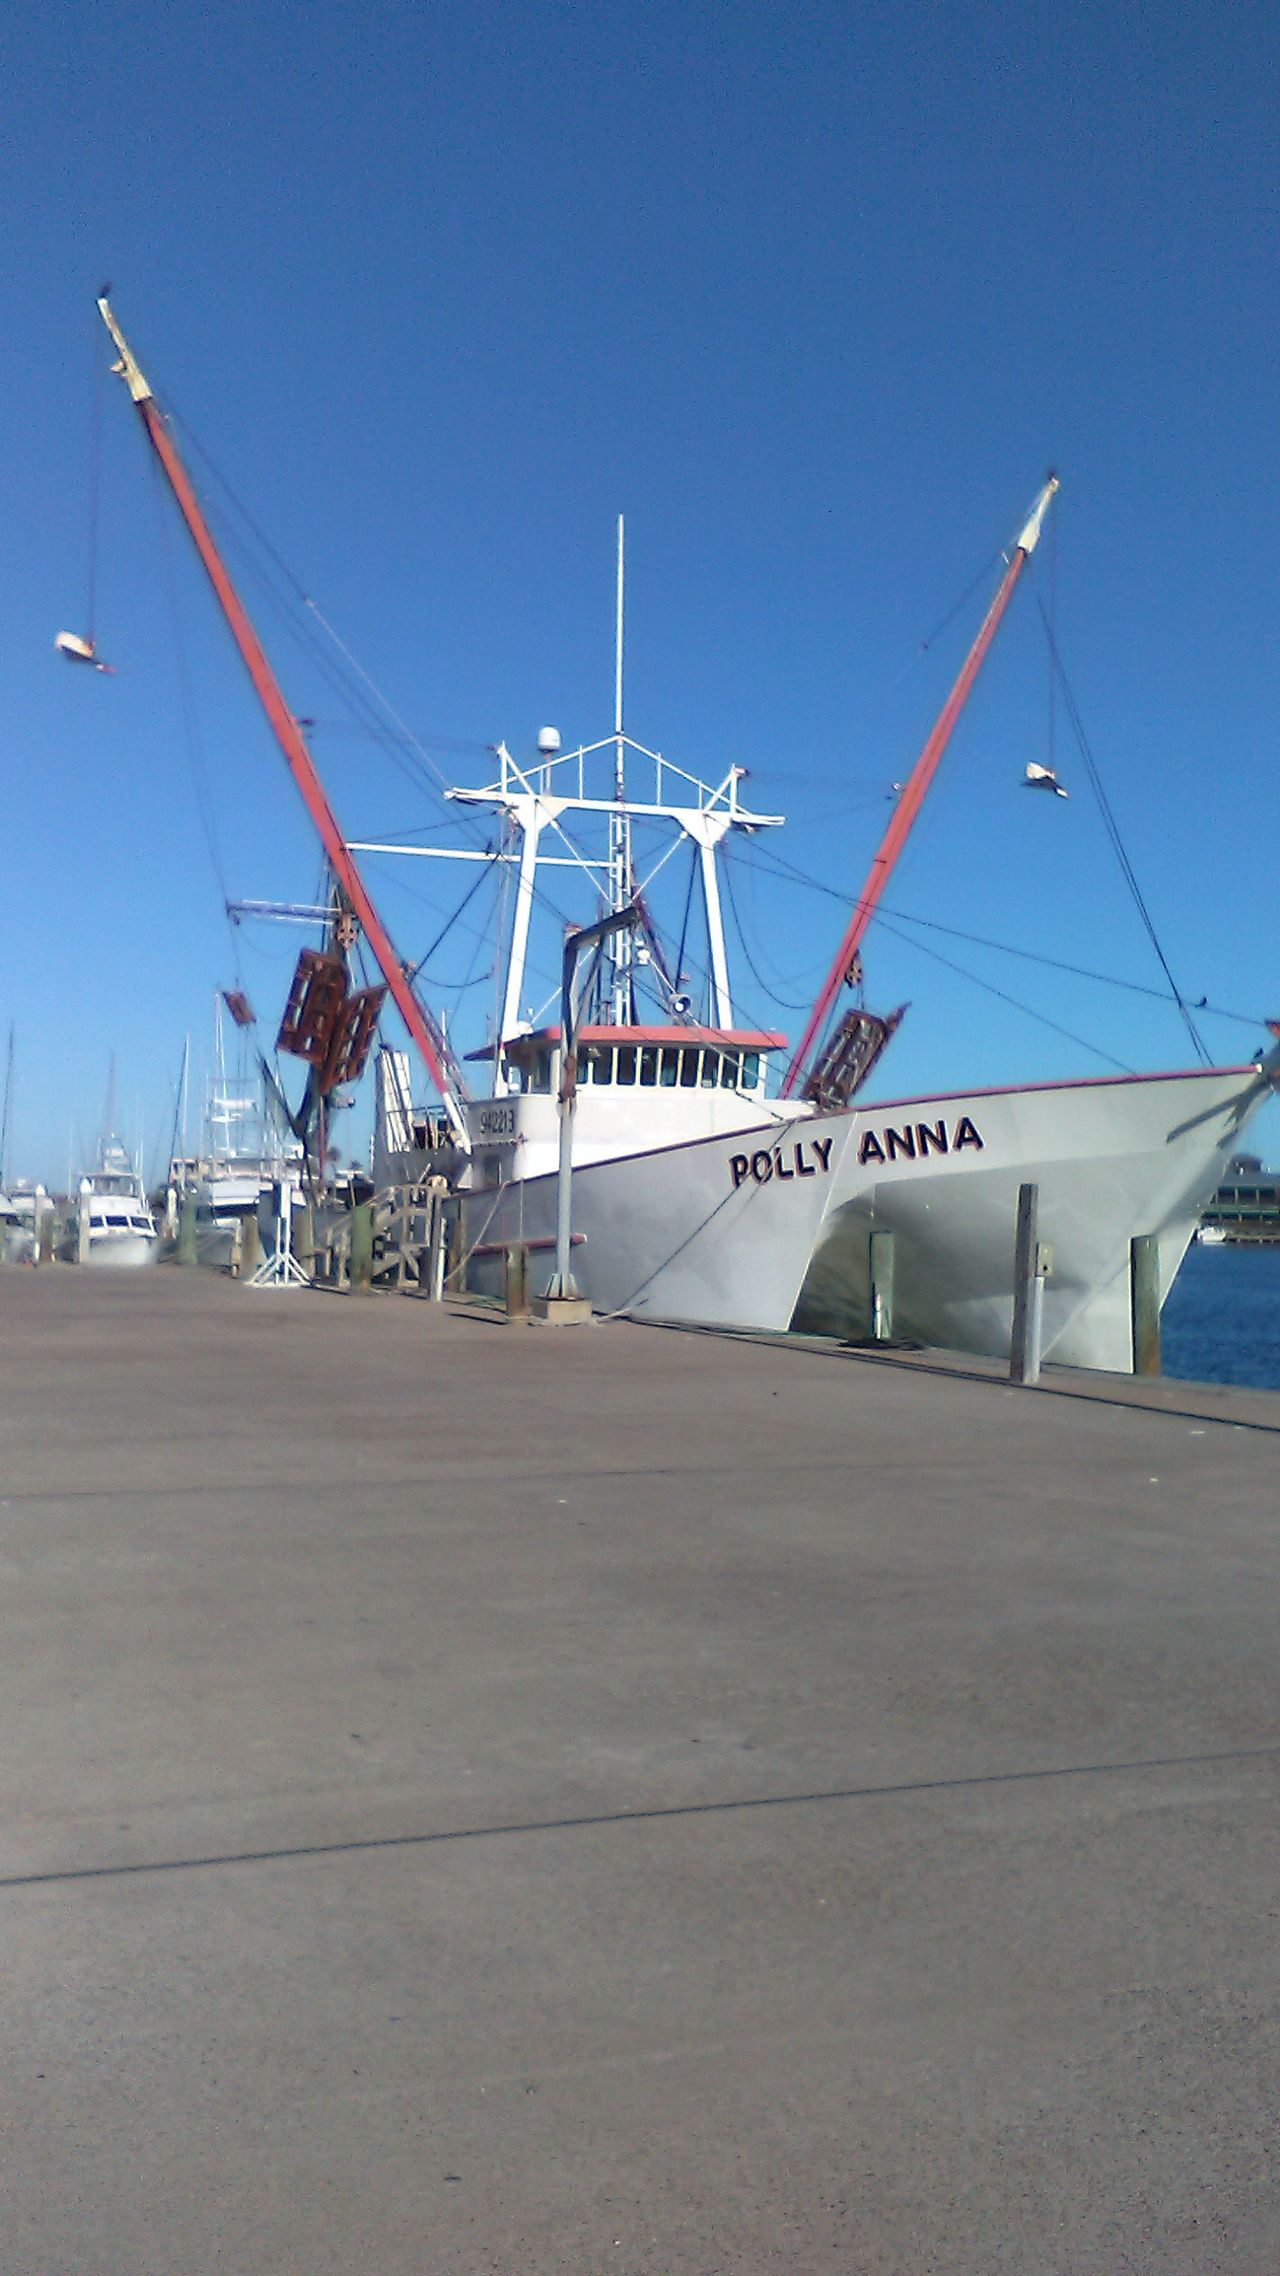 Taking Photos Things I Saw Today Port Aransas Texas Cellphone Photography Salty Air Taking A Stroll Shrimp Nets Boat Dock Open Edit Texas Skies